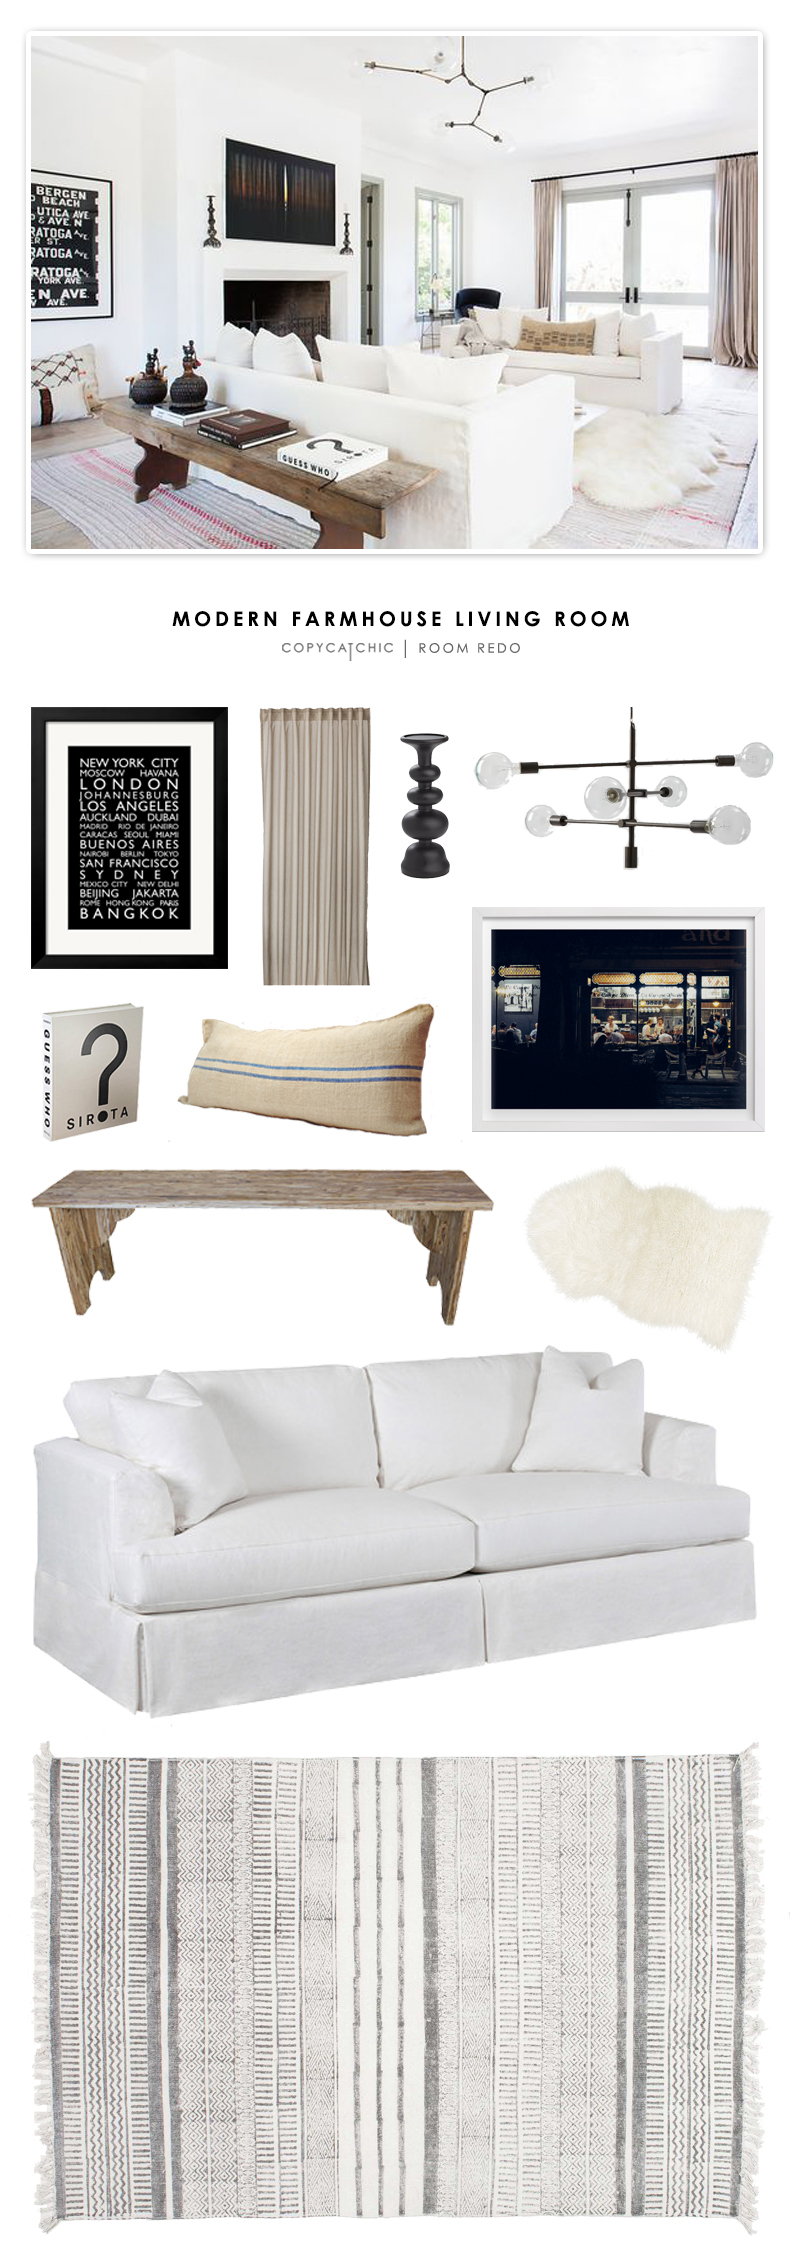 Modern farmhouse living room - A Bright And White Modern Farmhouse Living Room Designed By Vanessa Alexander And Recreated For Less